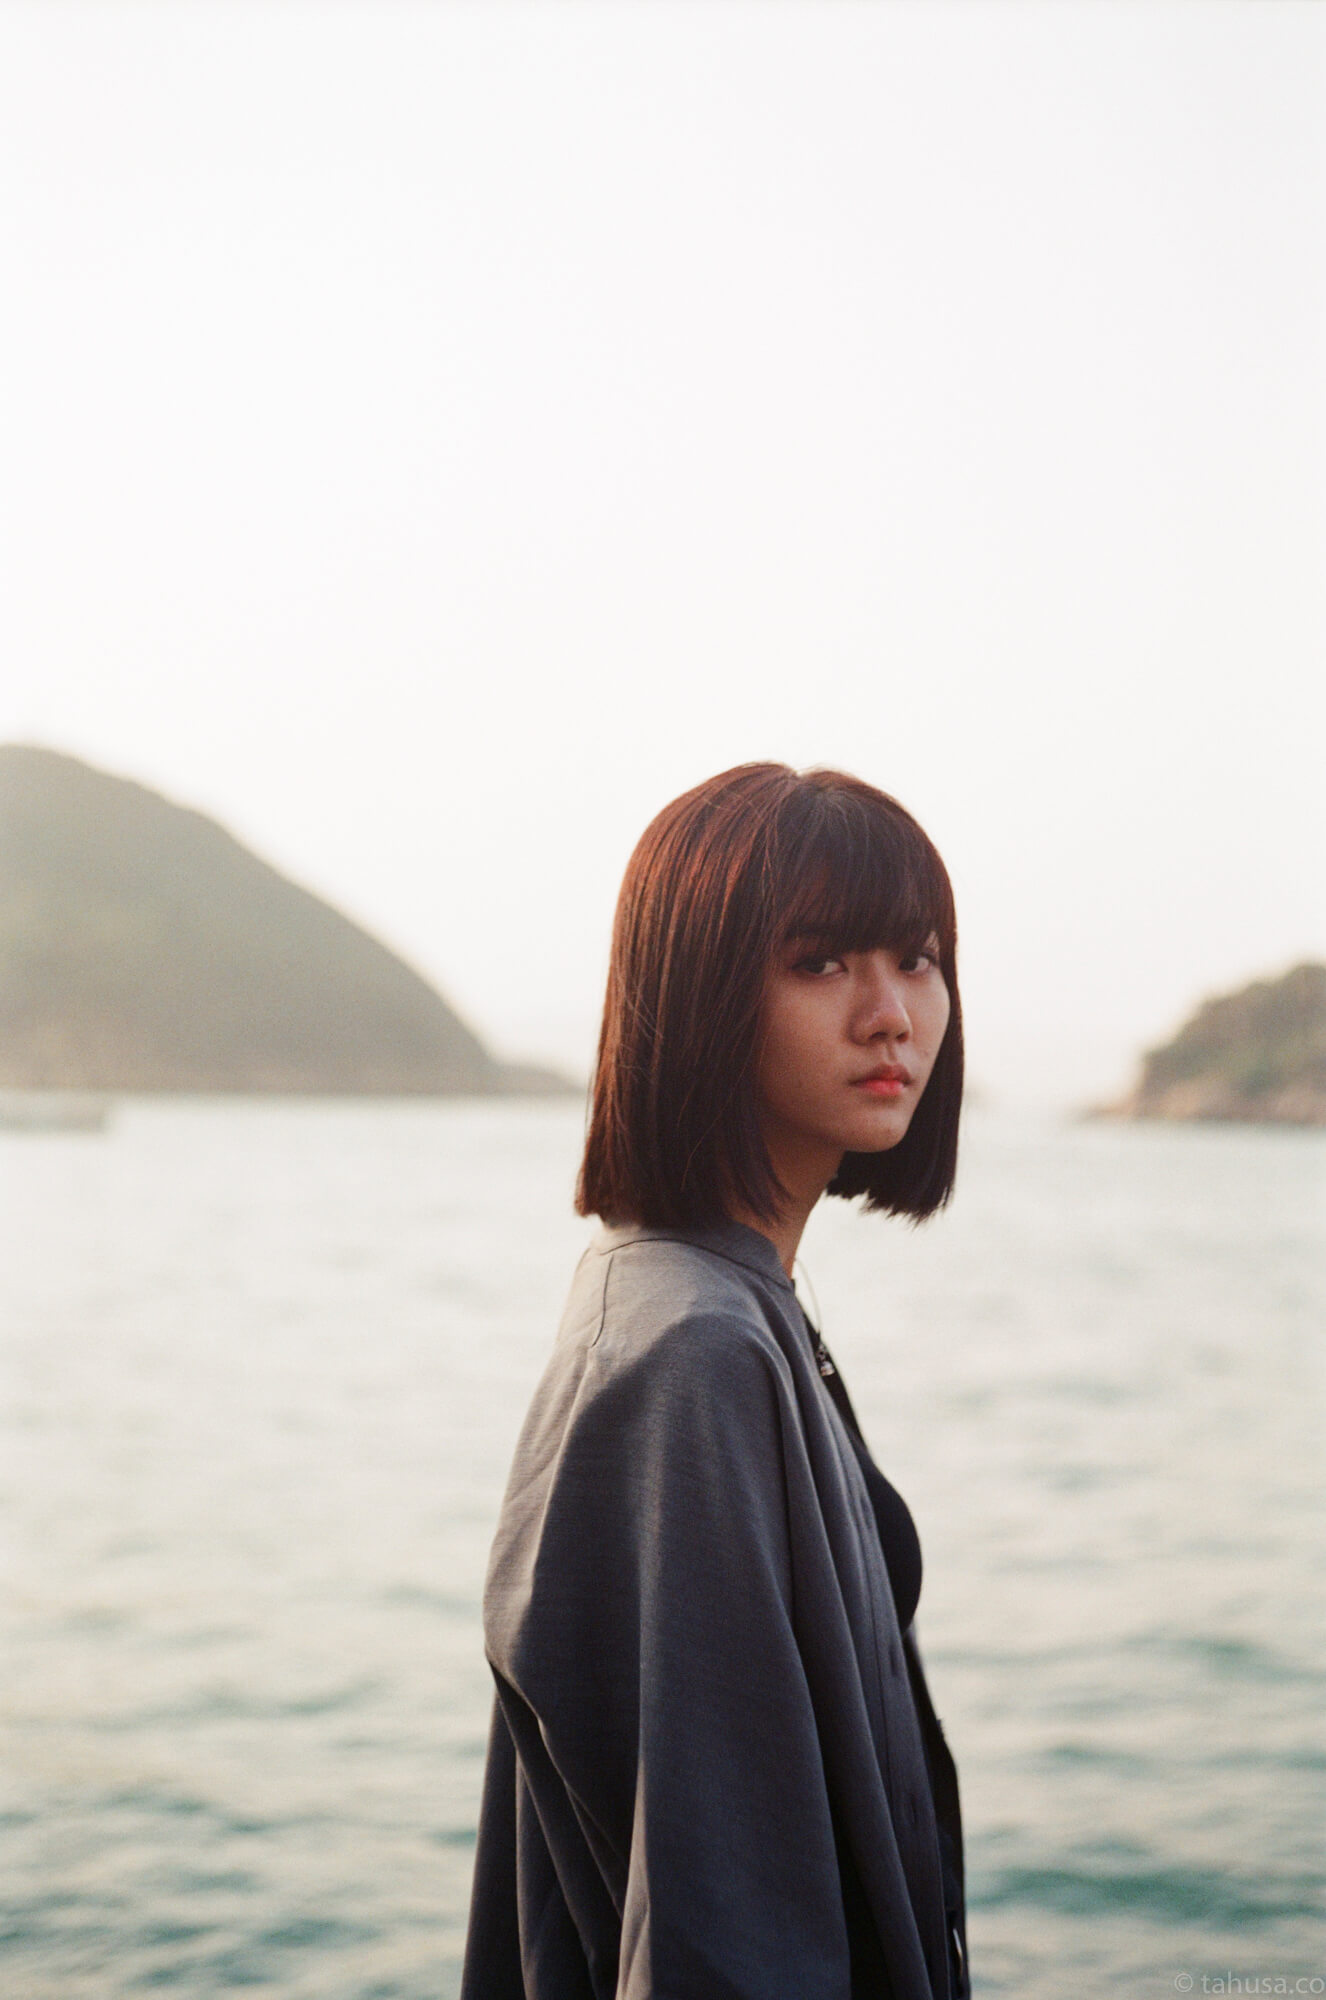 香港-街拍-街頭-上環-海邊-ayu-posing-portrait-sai-wan-pier-summilux-50mm-f1.4-v2-using-film-leica-m2-superia-premium-400-iso400